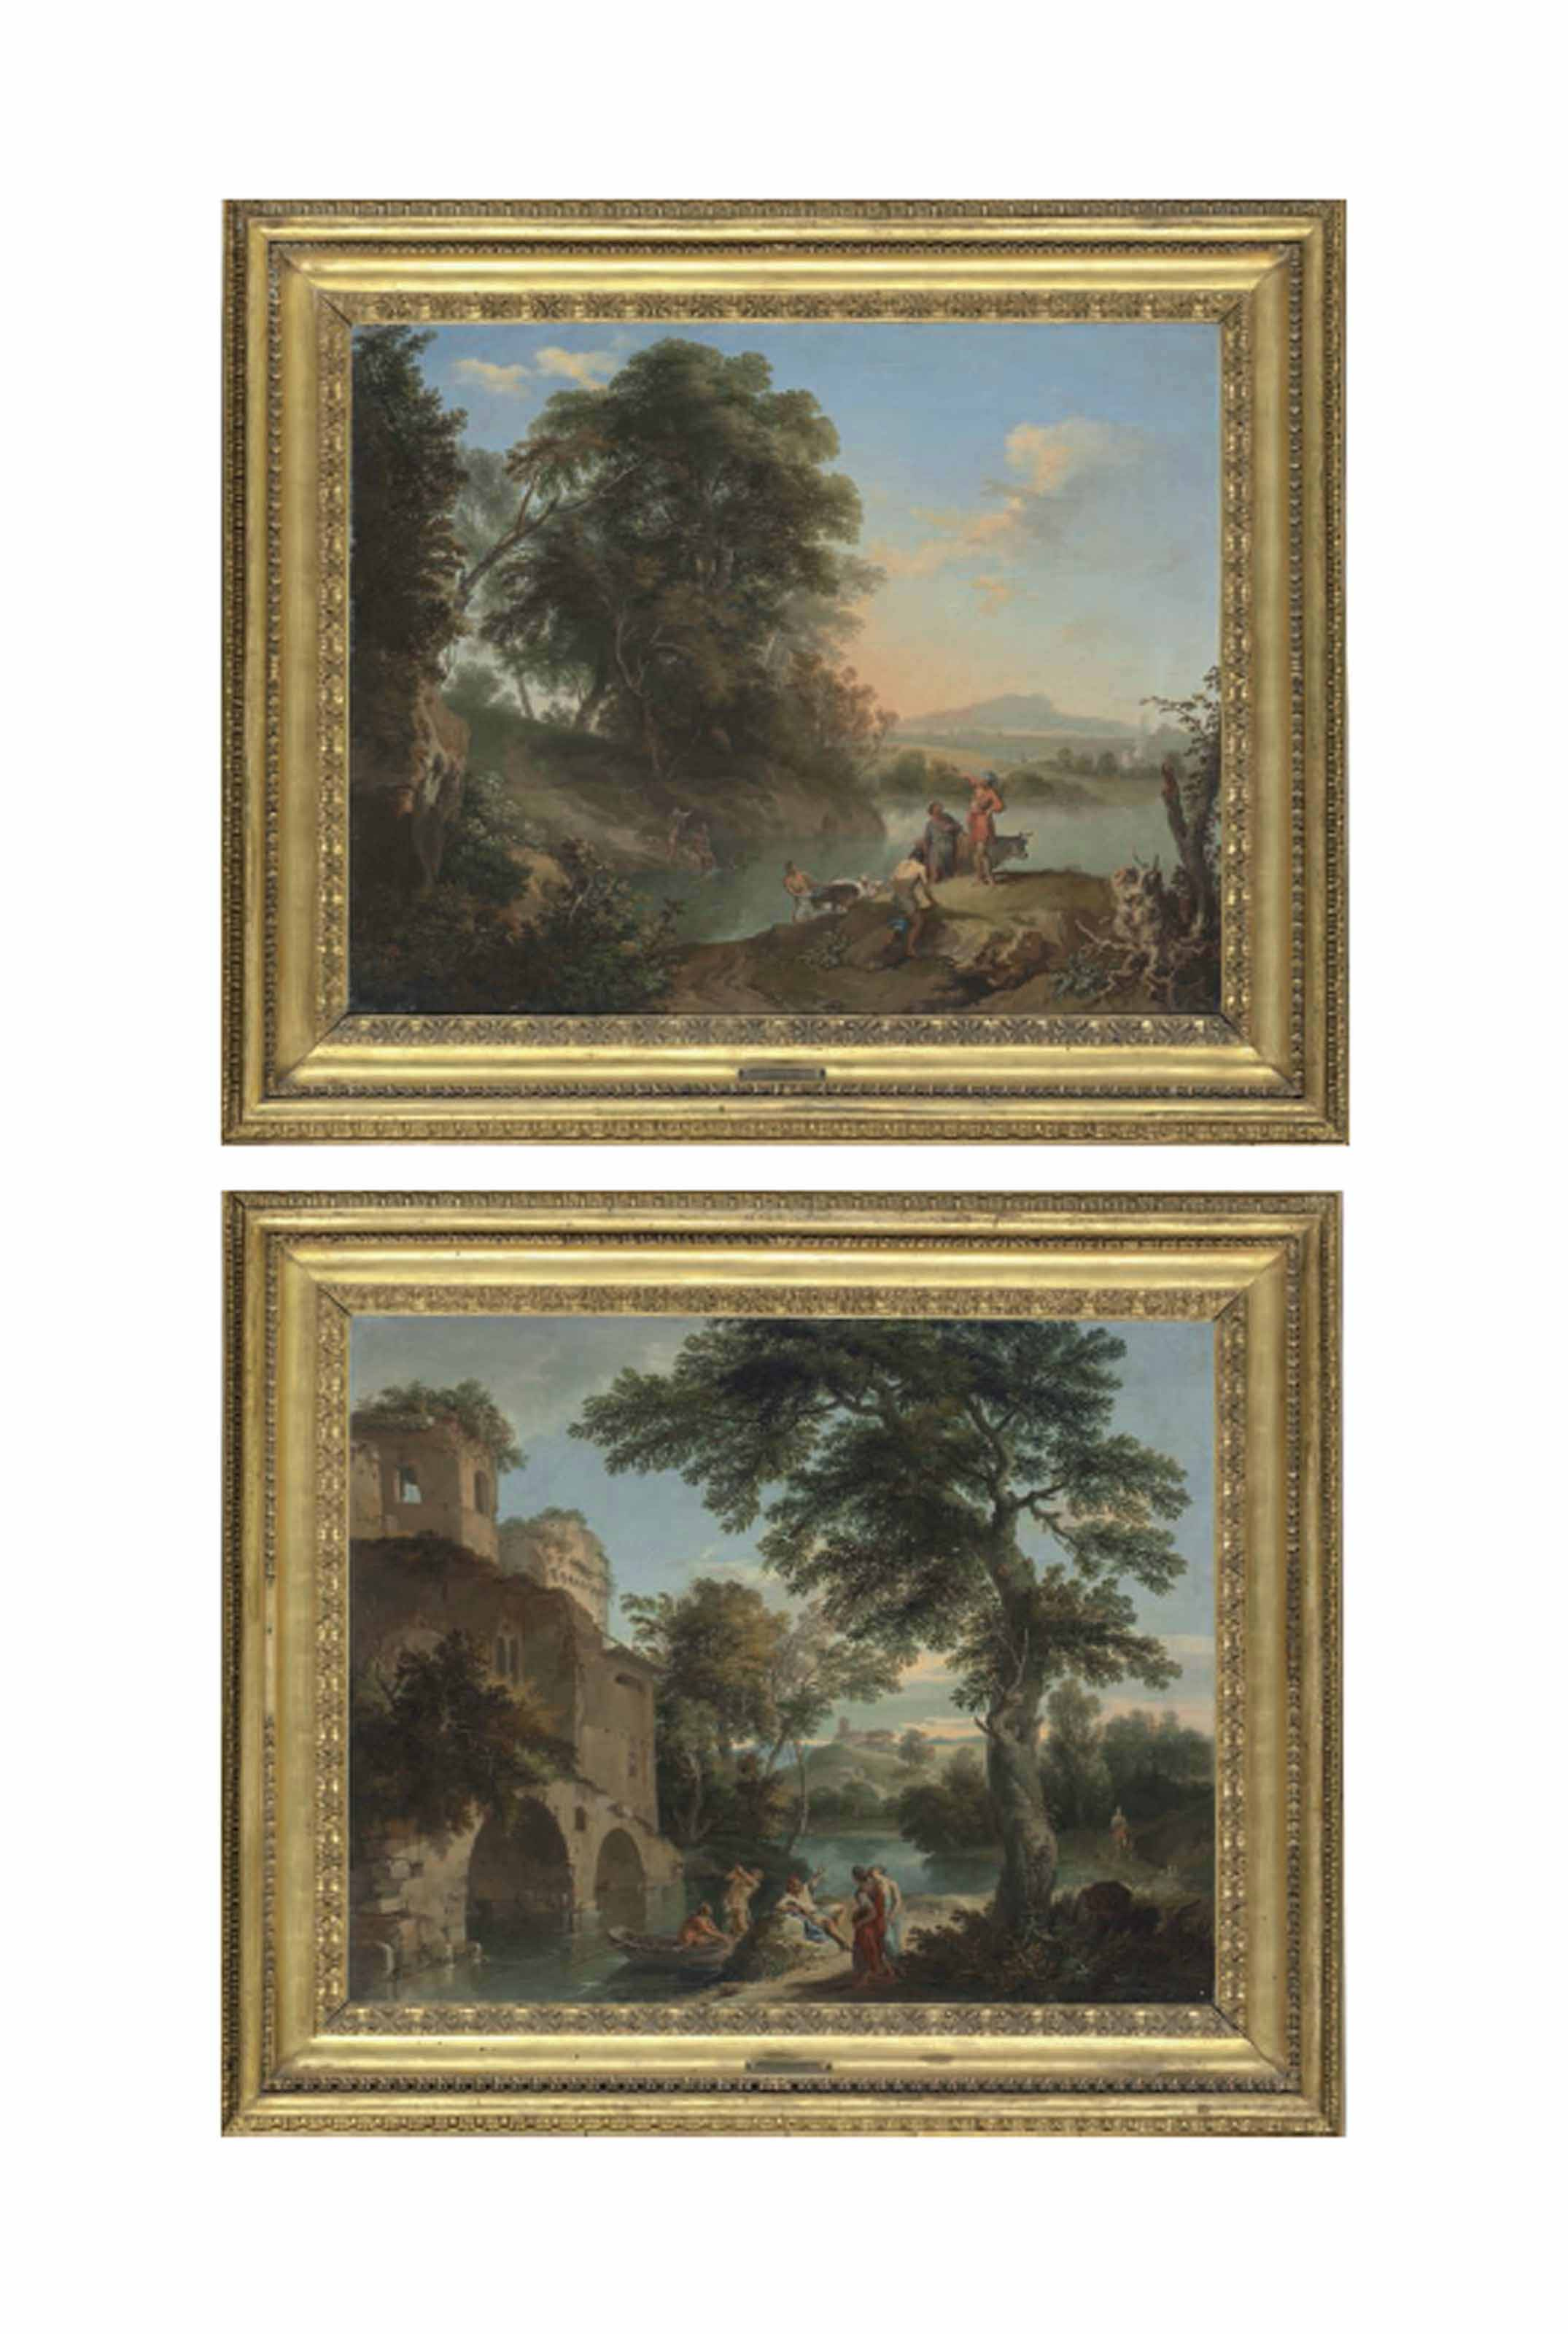 An Italianate landscape with figures resting by a stream near a ruined castle; and An Italianate landscape with herdsmen and their cattle and goats by a stream